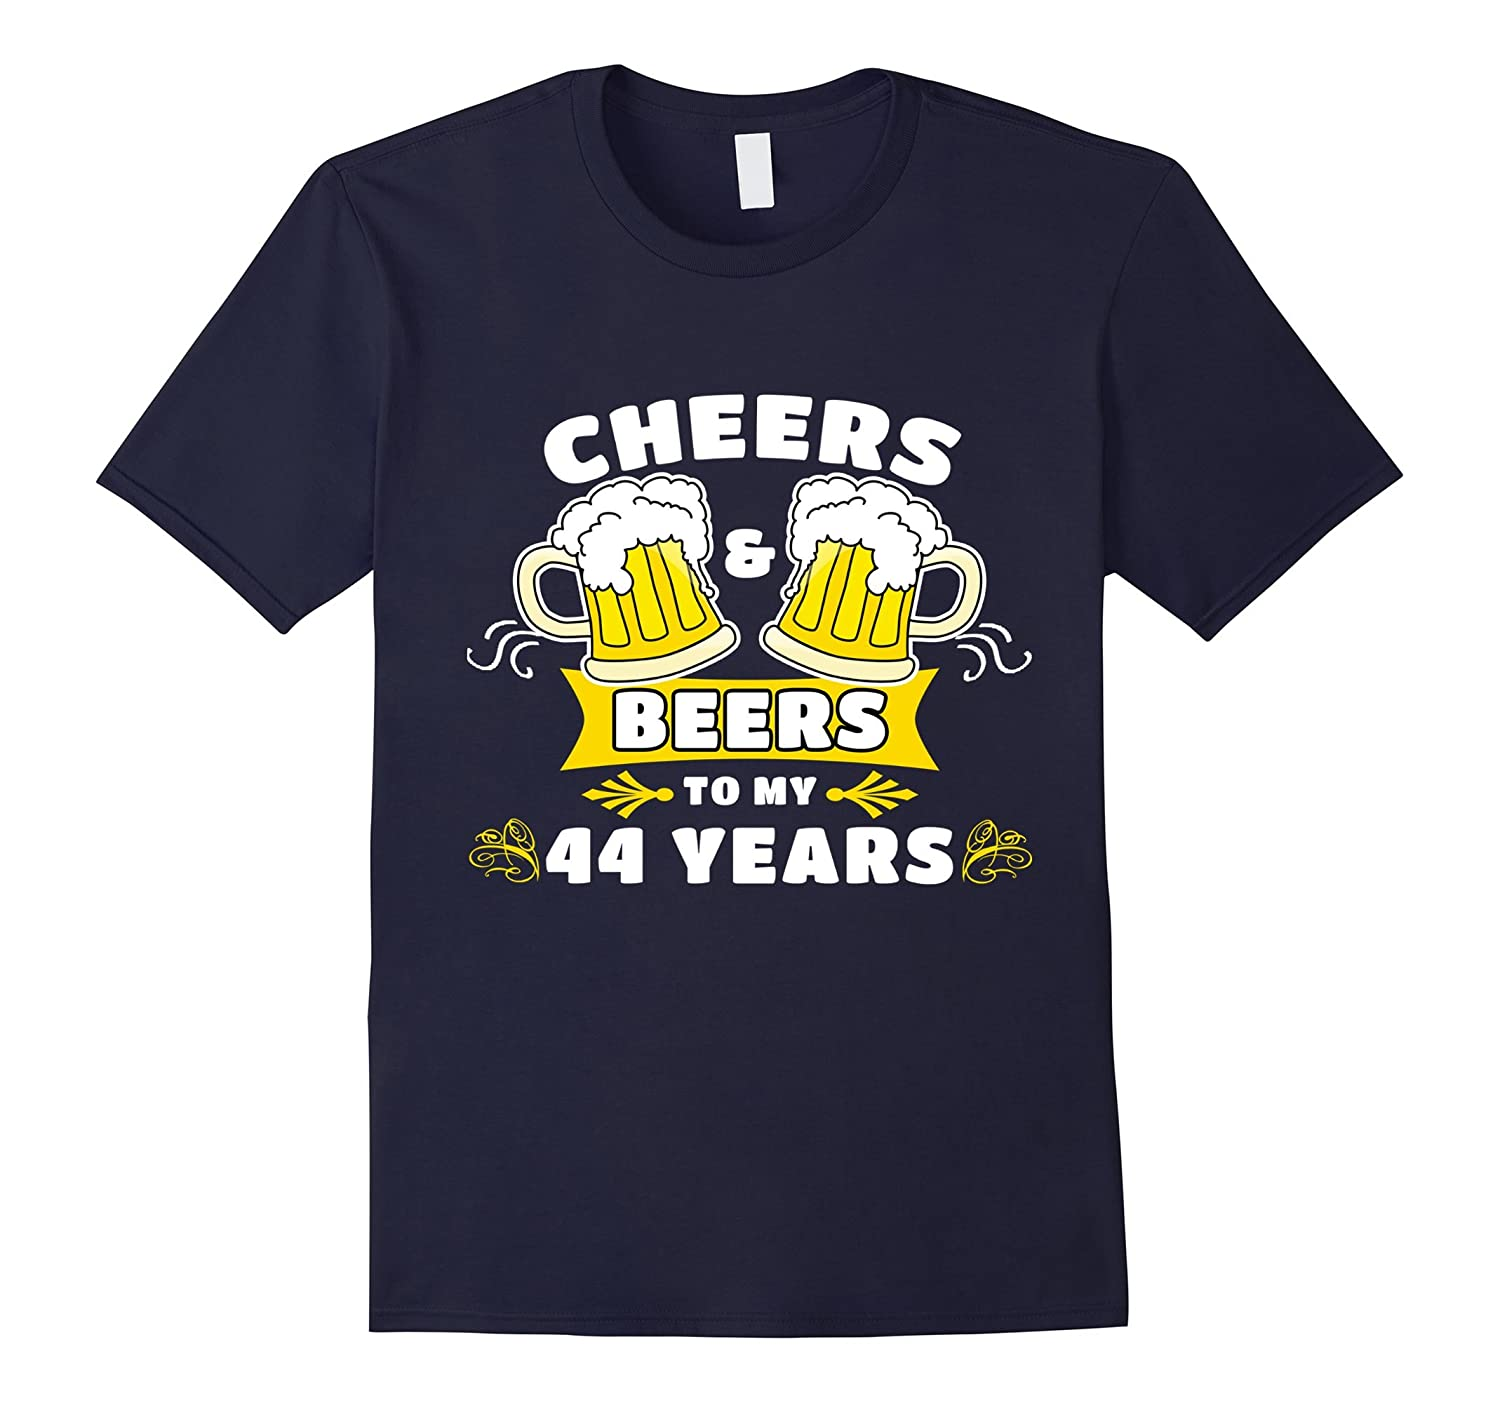 Cheers And Beers To My 44 Years T-Shirt 44th Birthday Gift-Art